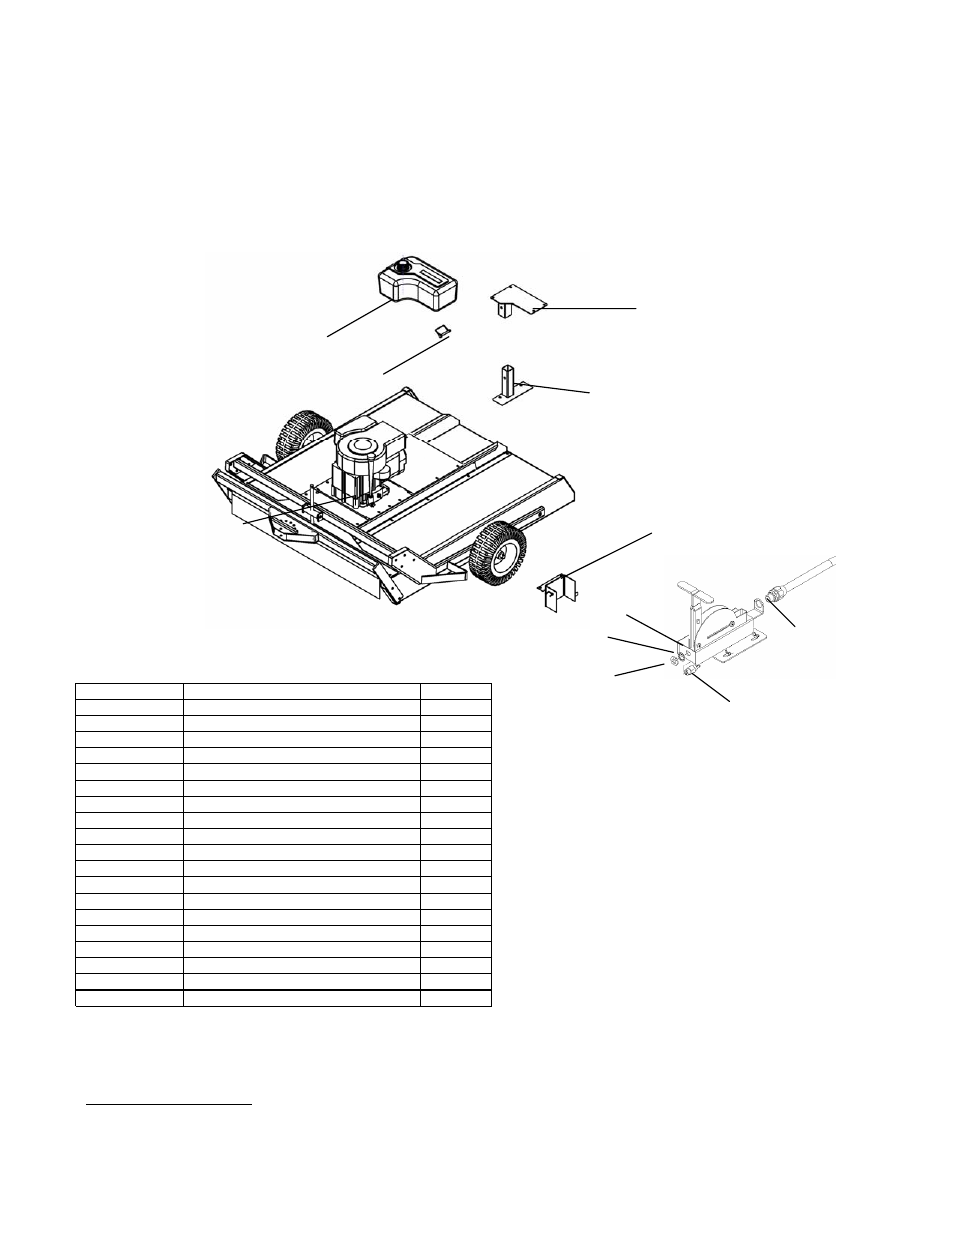 swisher rtb134412v user manual page 15 16 also for rtb14544